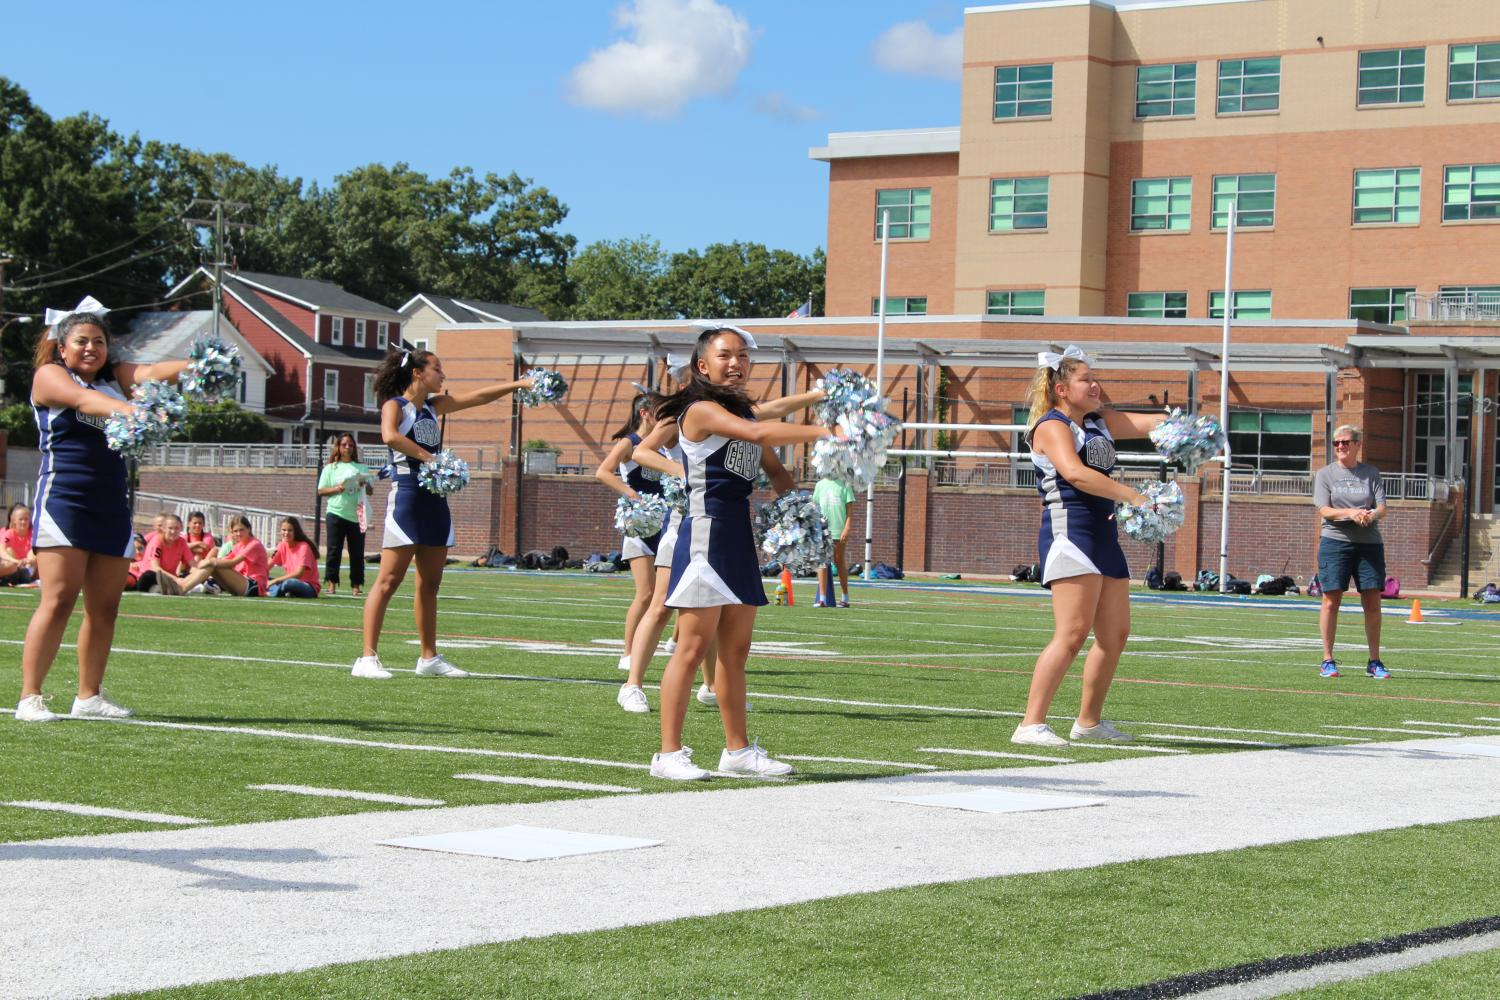 The JV cheer team performs a routine for the crowd at the pep rally